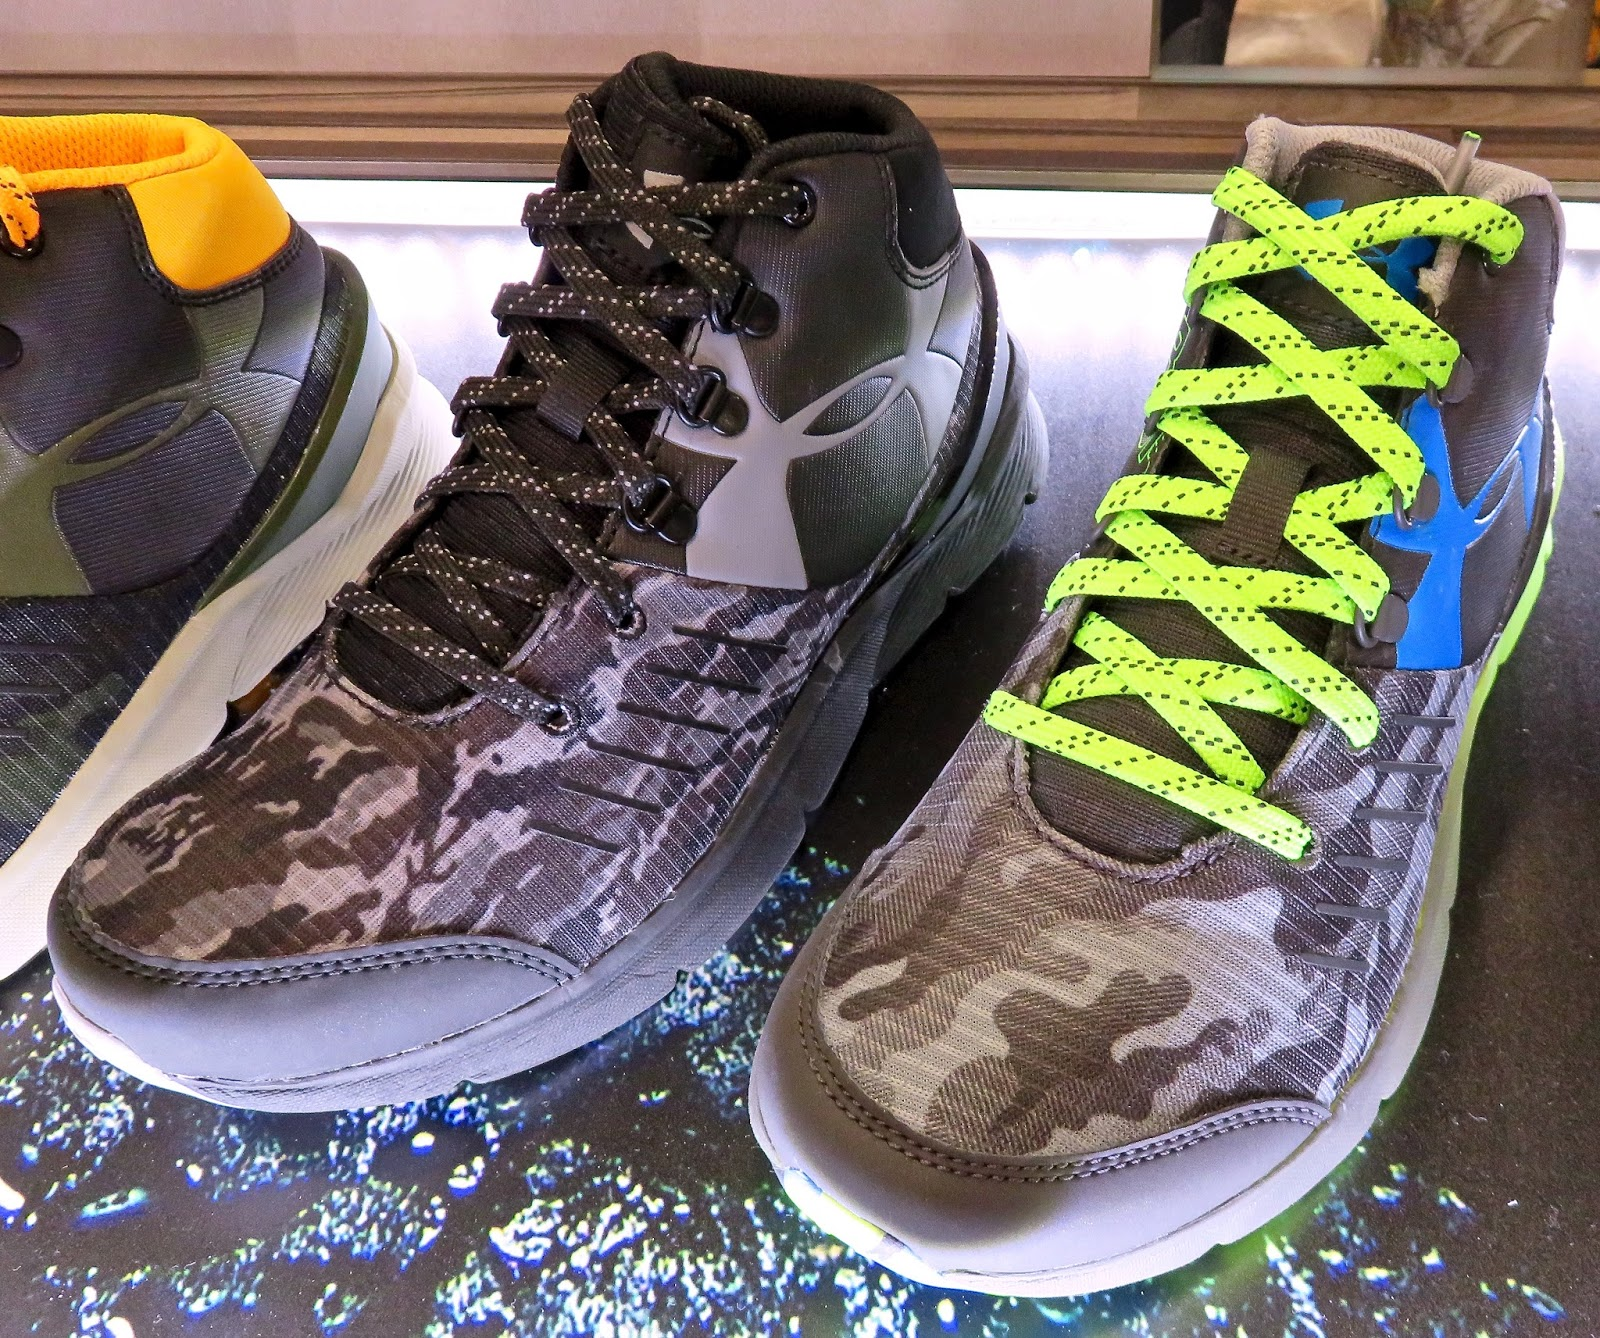 0f7acd0961e03 UNDER ARMOUR OUTDOORS' DEBUTS Footwear/Apparel Highlights Spring 2016